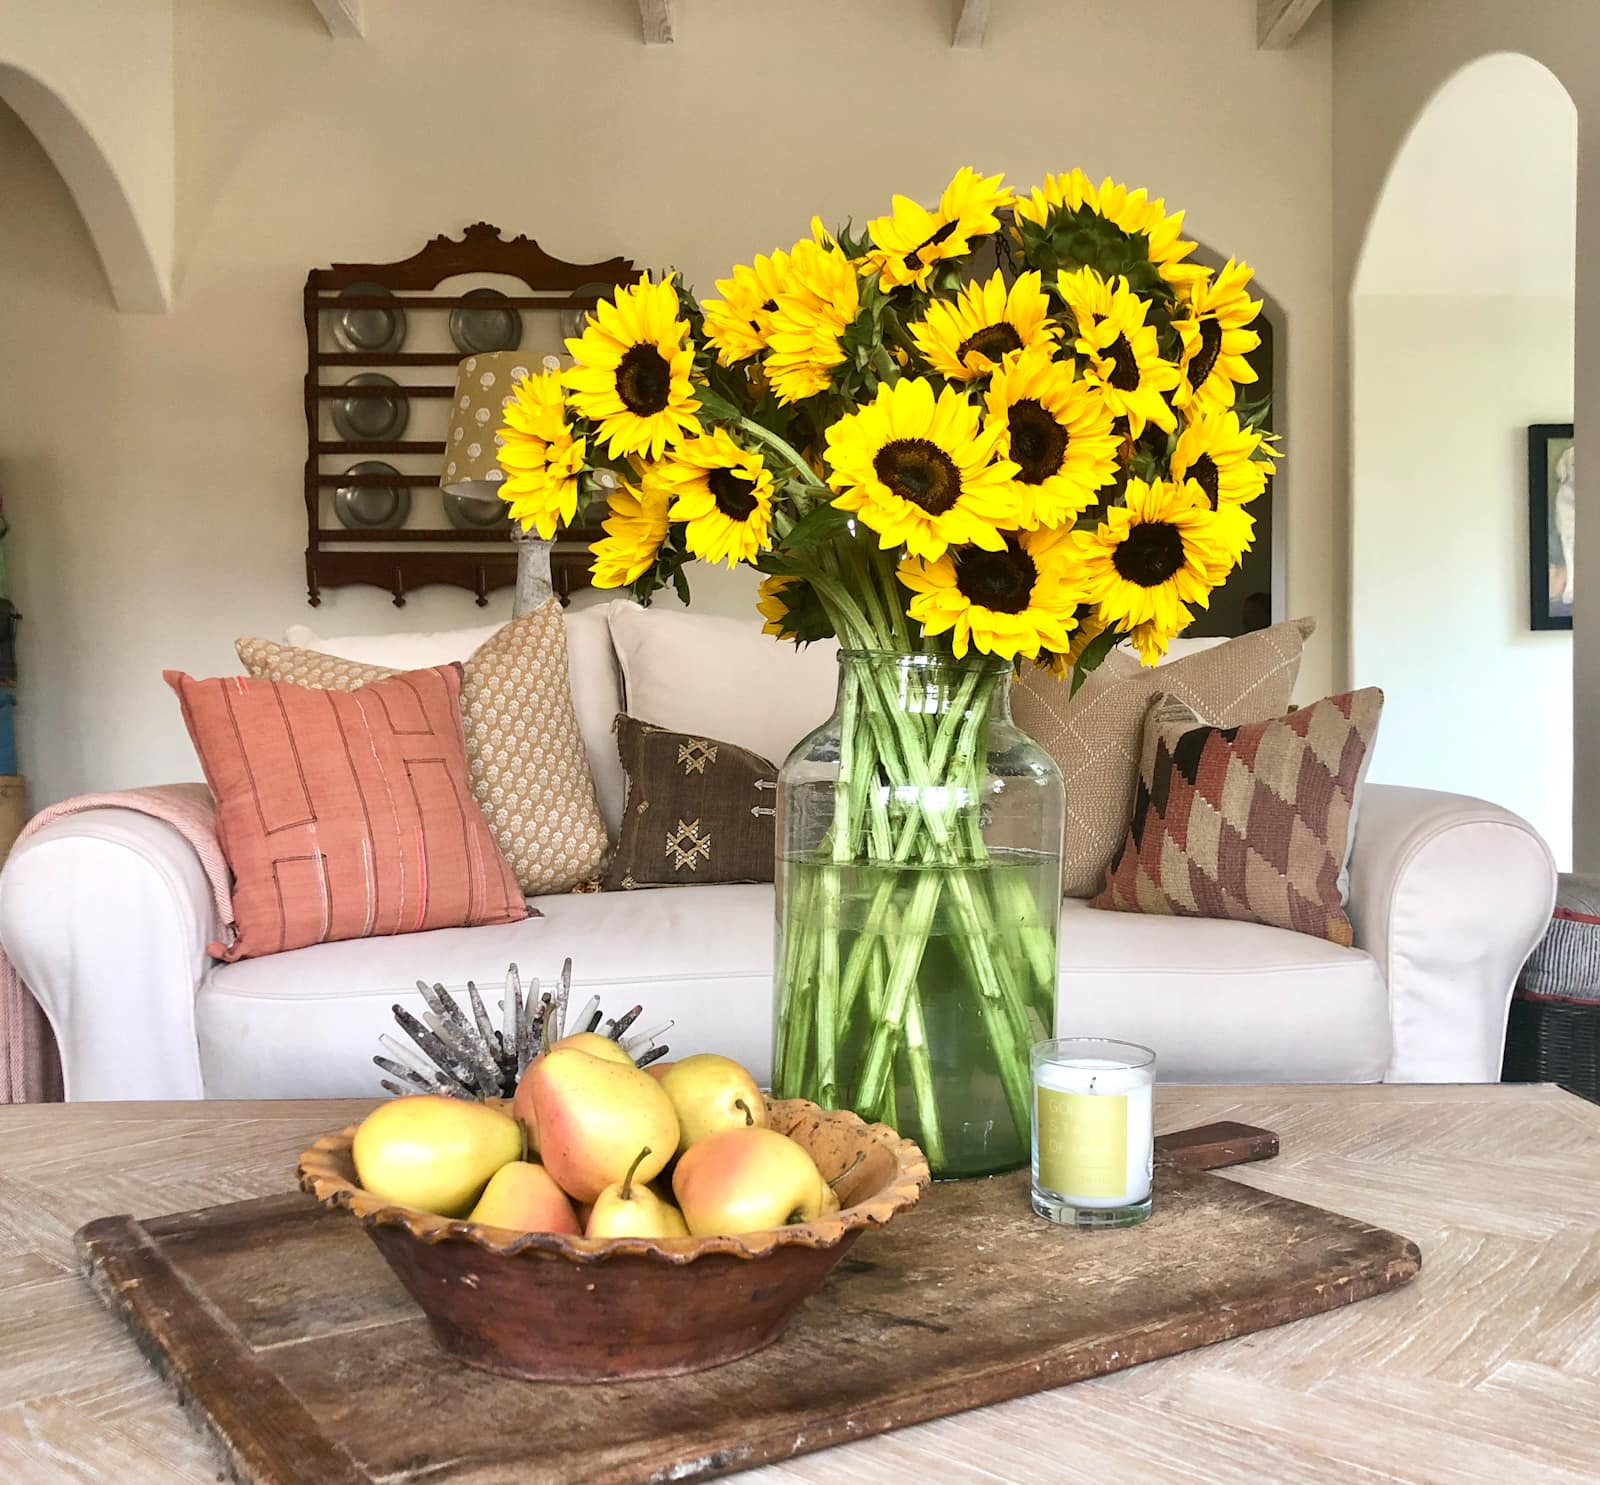 cindy hattersley's coffee table with sunflowers and pears